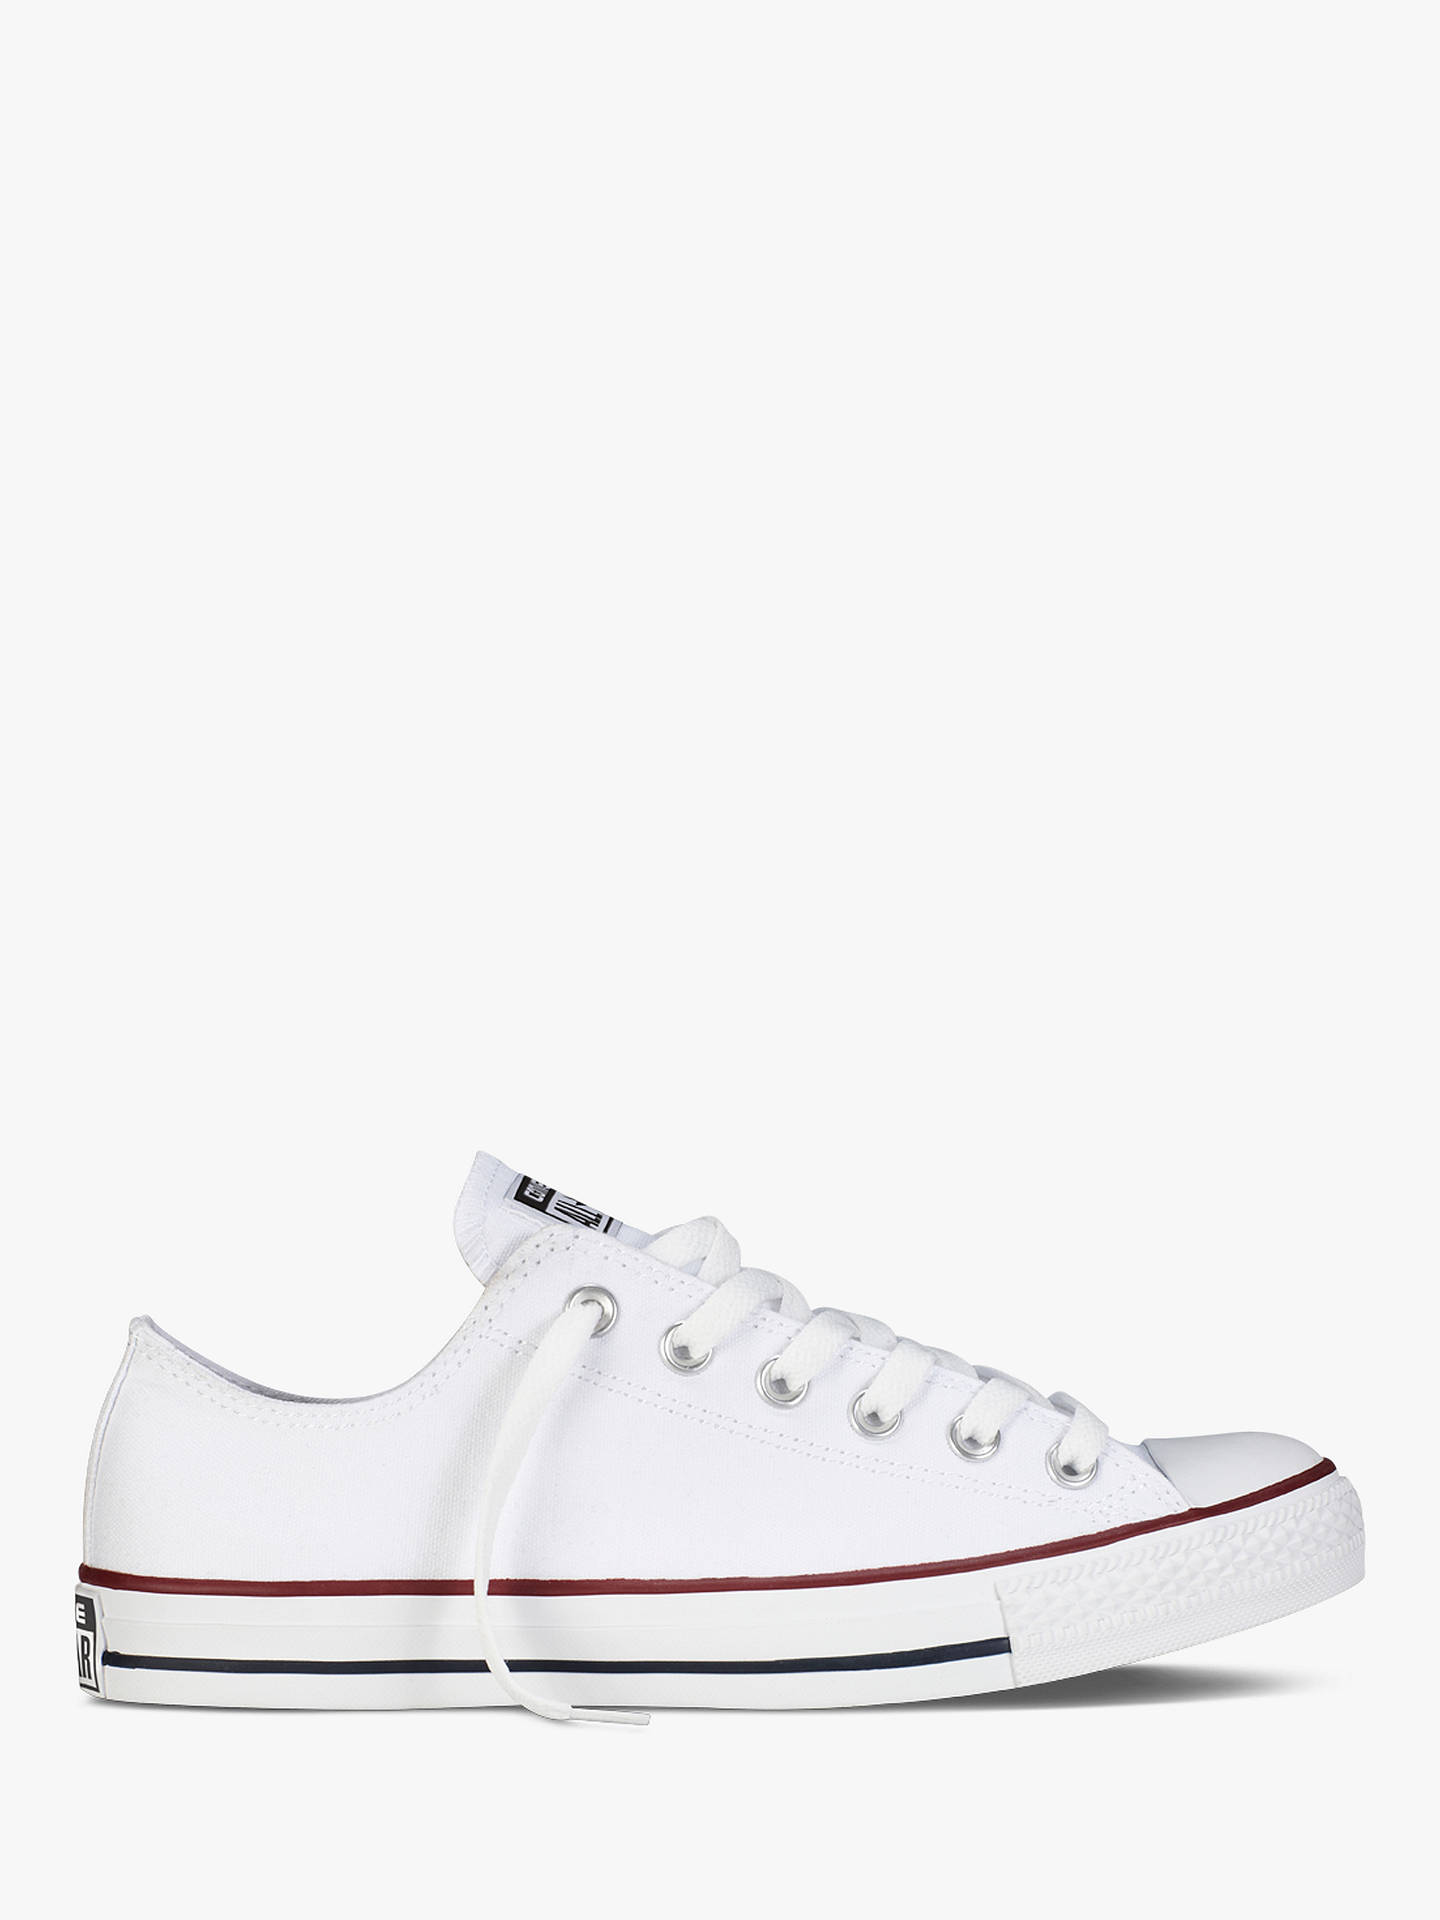 79683bbe0add Converse Children s Chuck Taylor All Star Trainers at John Lewis ...